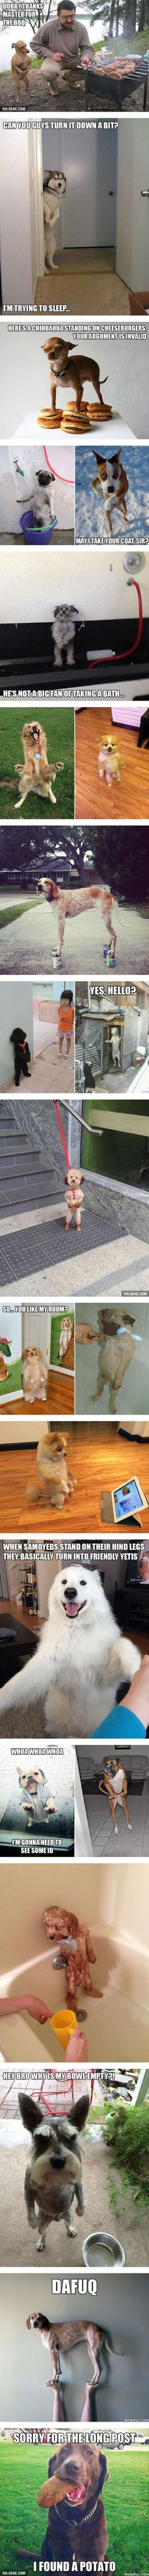 Awkwardly Standing Dogs